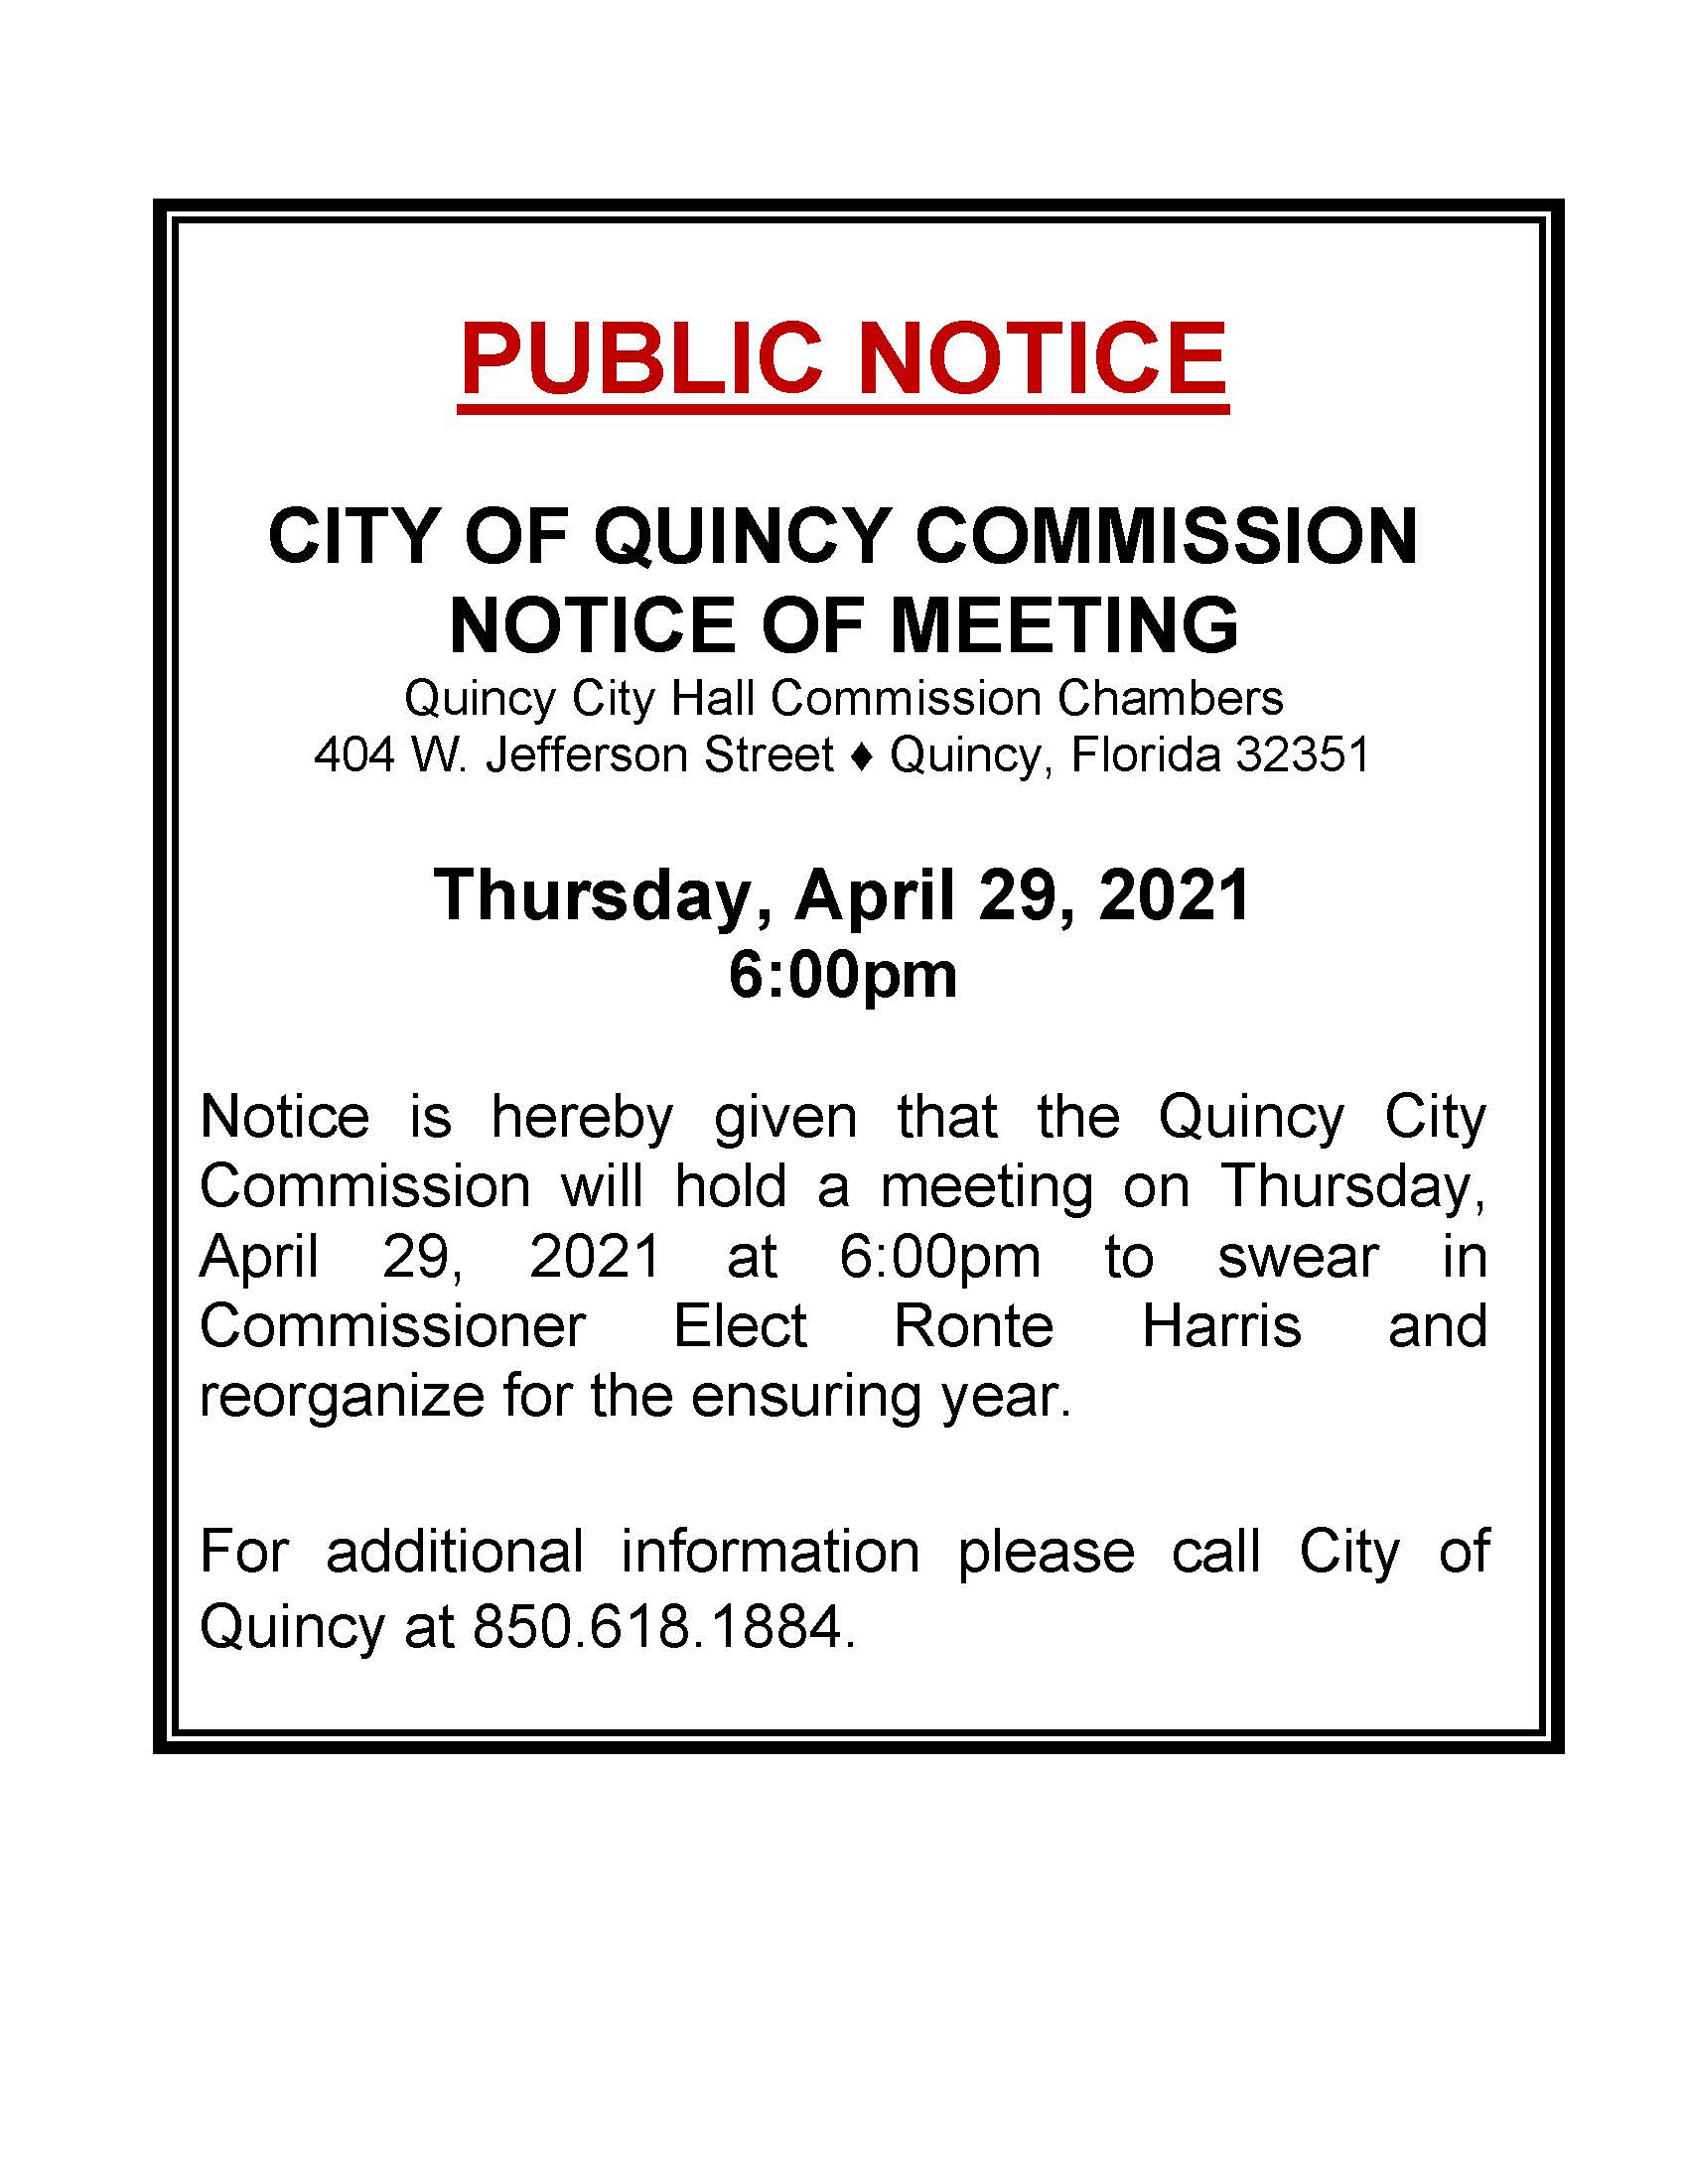 Notice of Reorganization Meeting @ City Commission Chambers